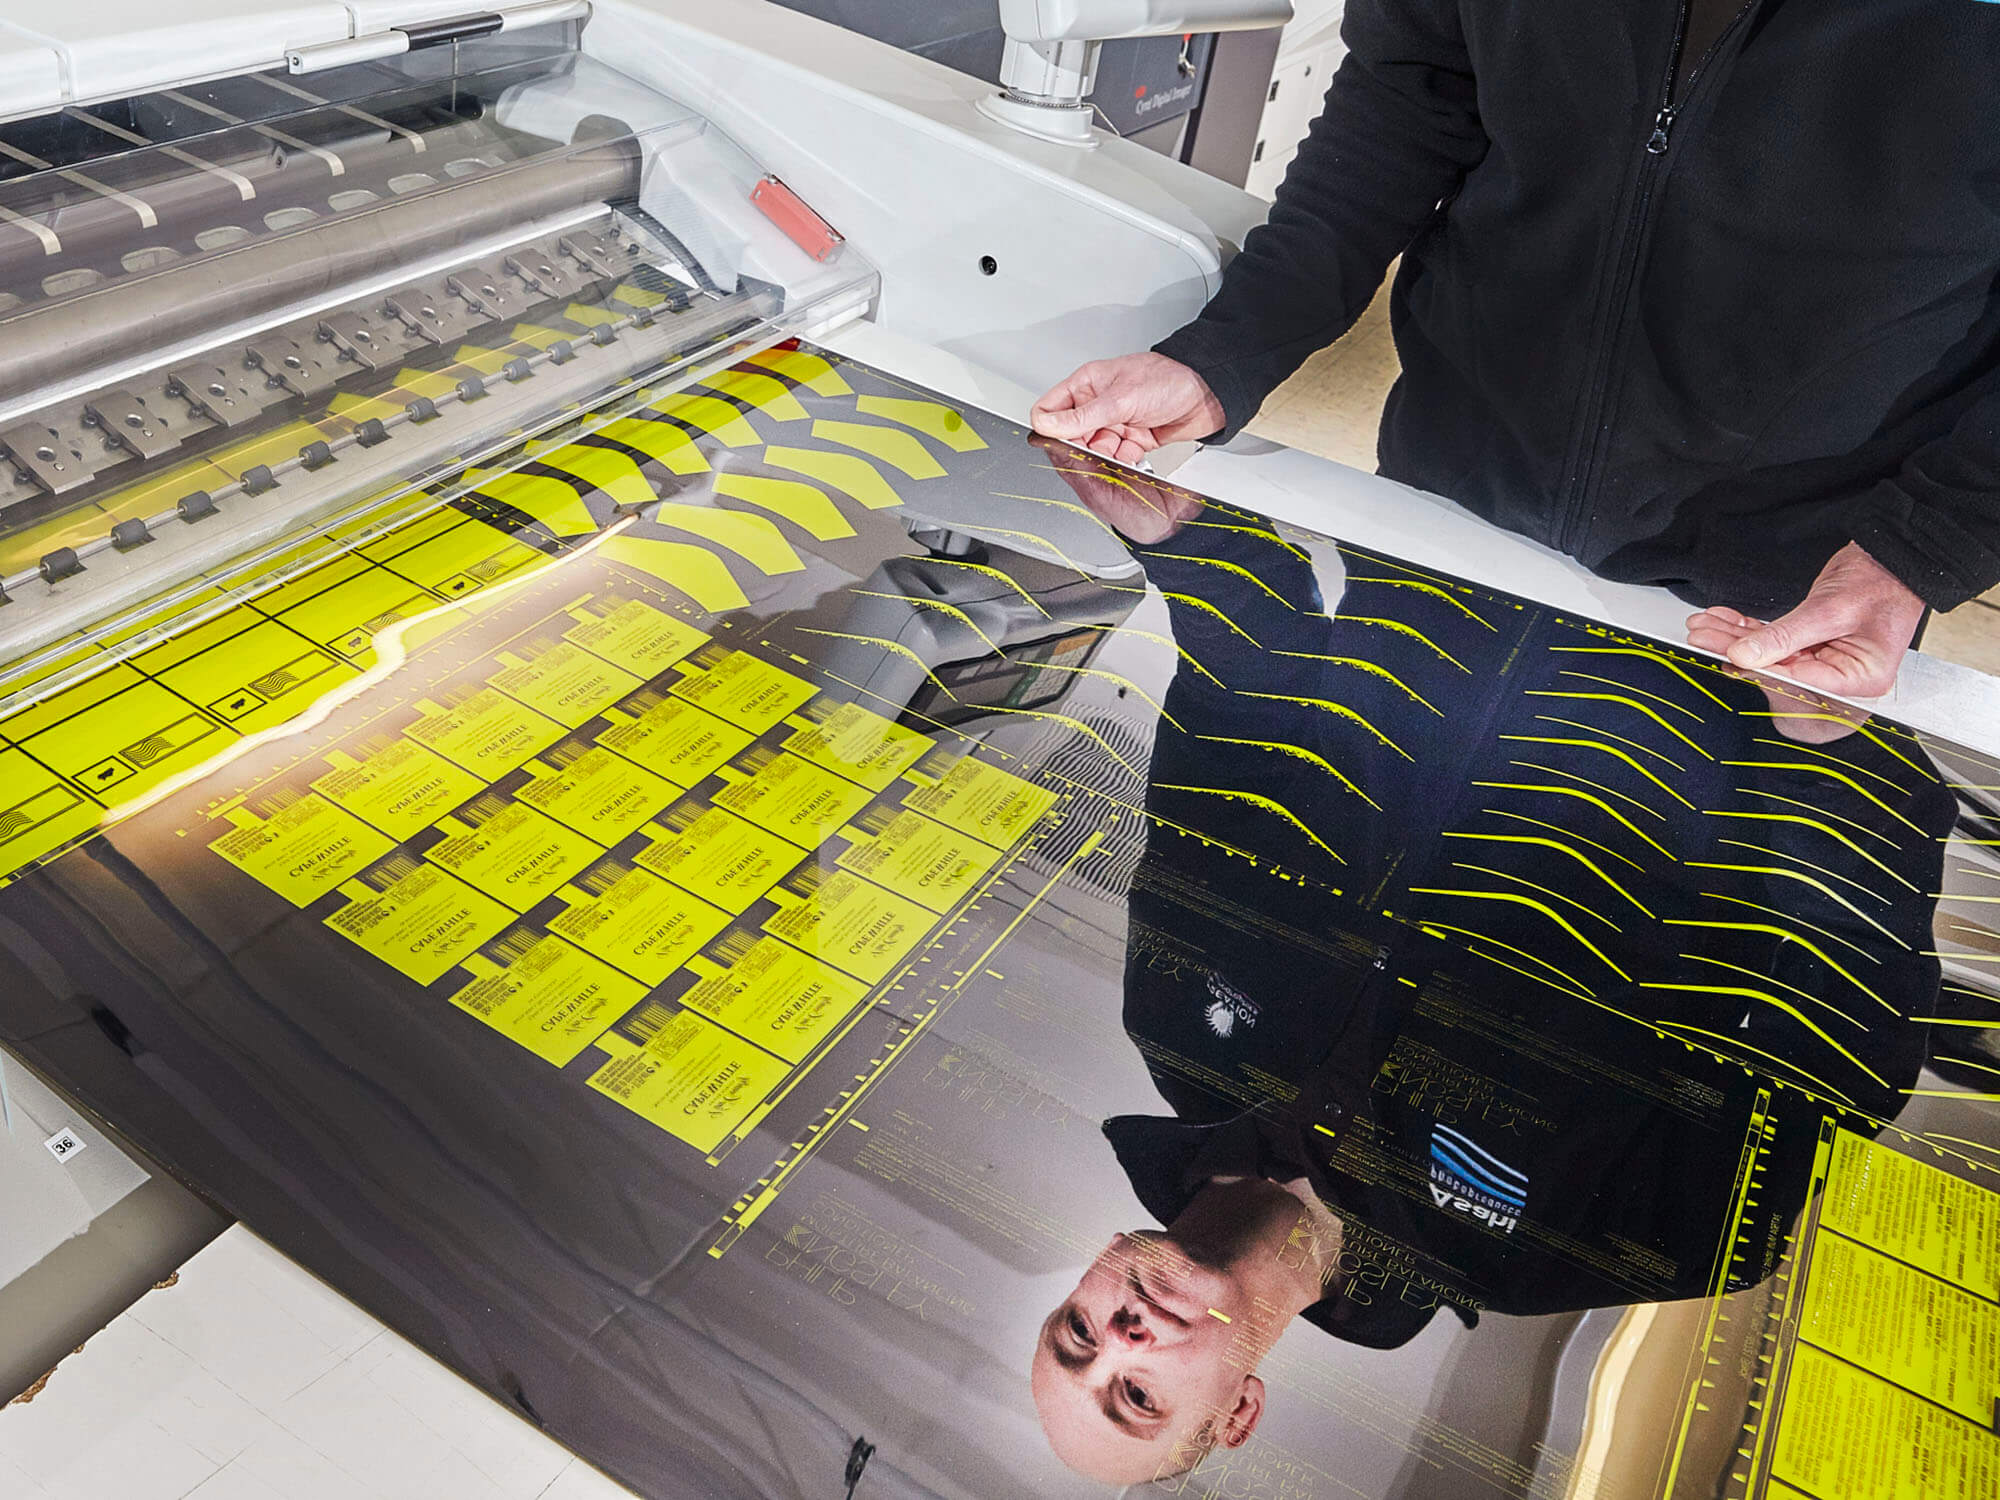 Member of Creation Reprographics staff is seen in his reflection on a shiny black printed surface with yellow graphics